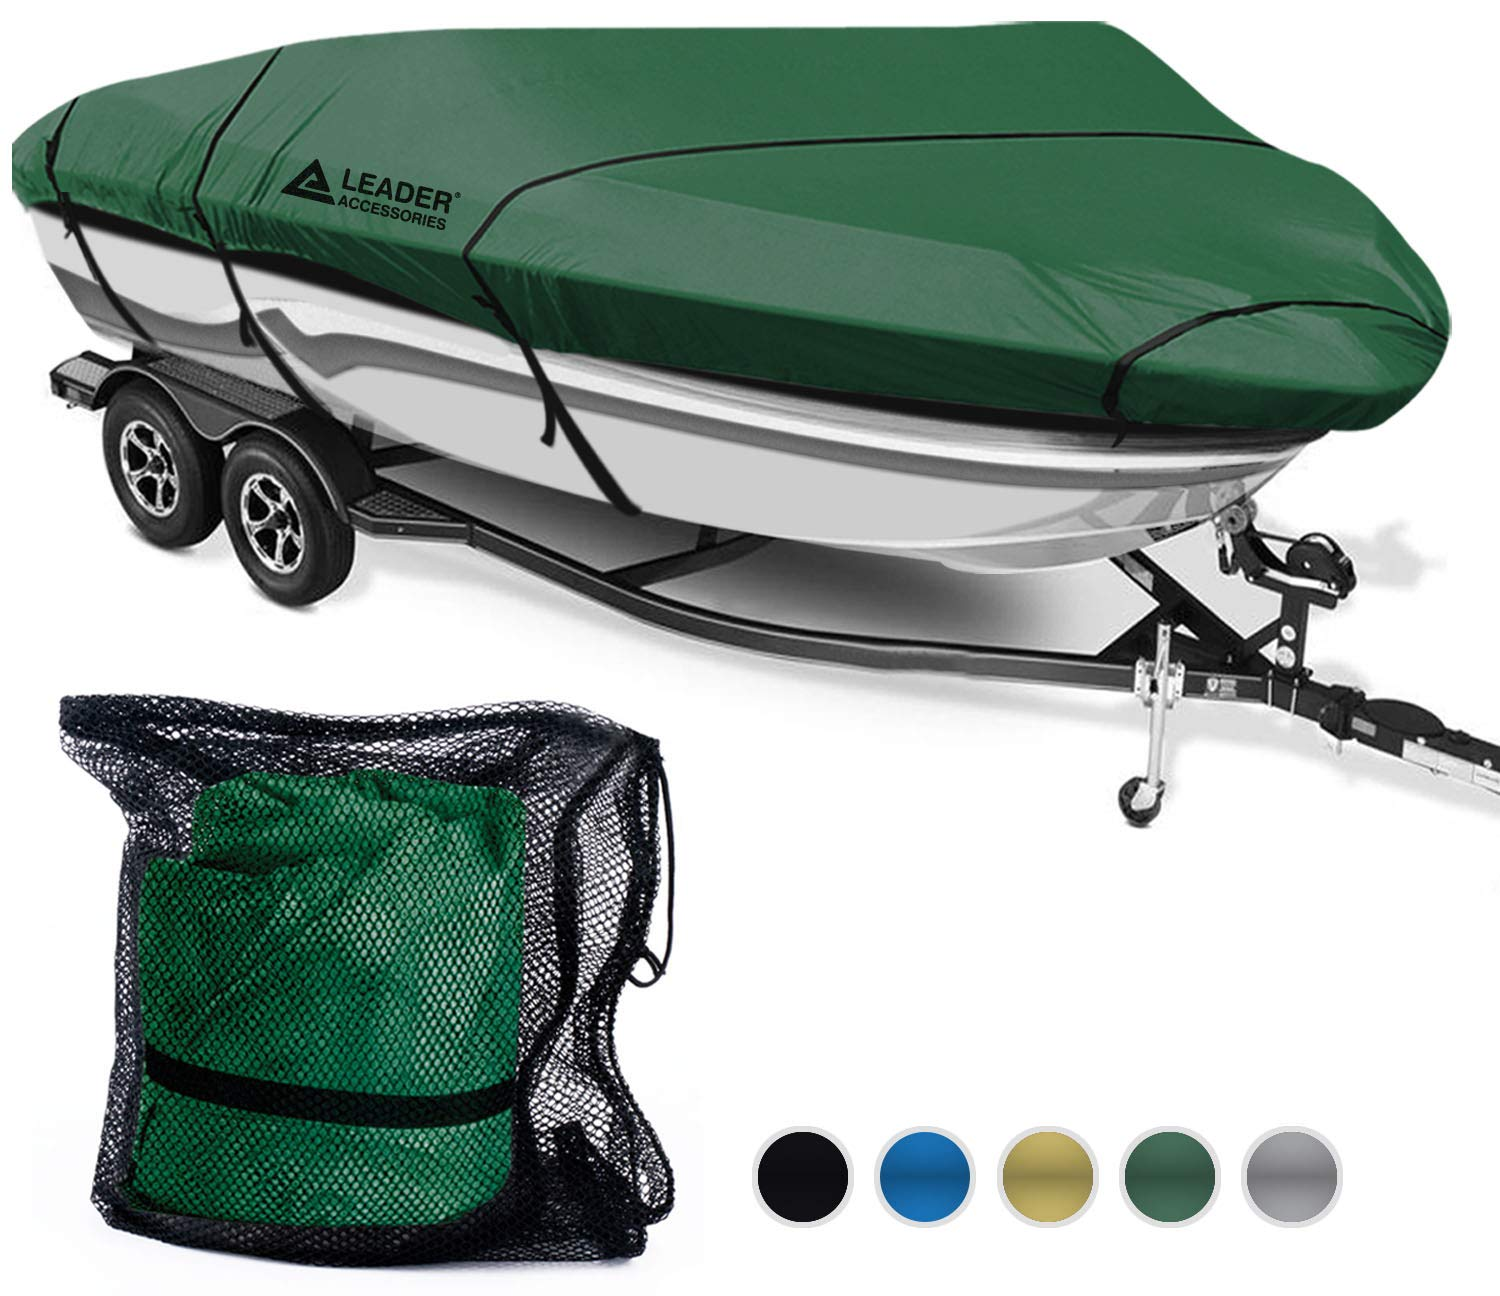 Leader Accessories 600D Waterproof Trailerable Runabout Boat Cover Fit V-Hull Tri-Hull Fishing Ski Pro-Style Bass Boats, Full Size